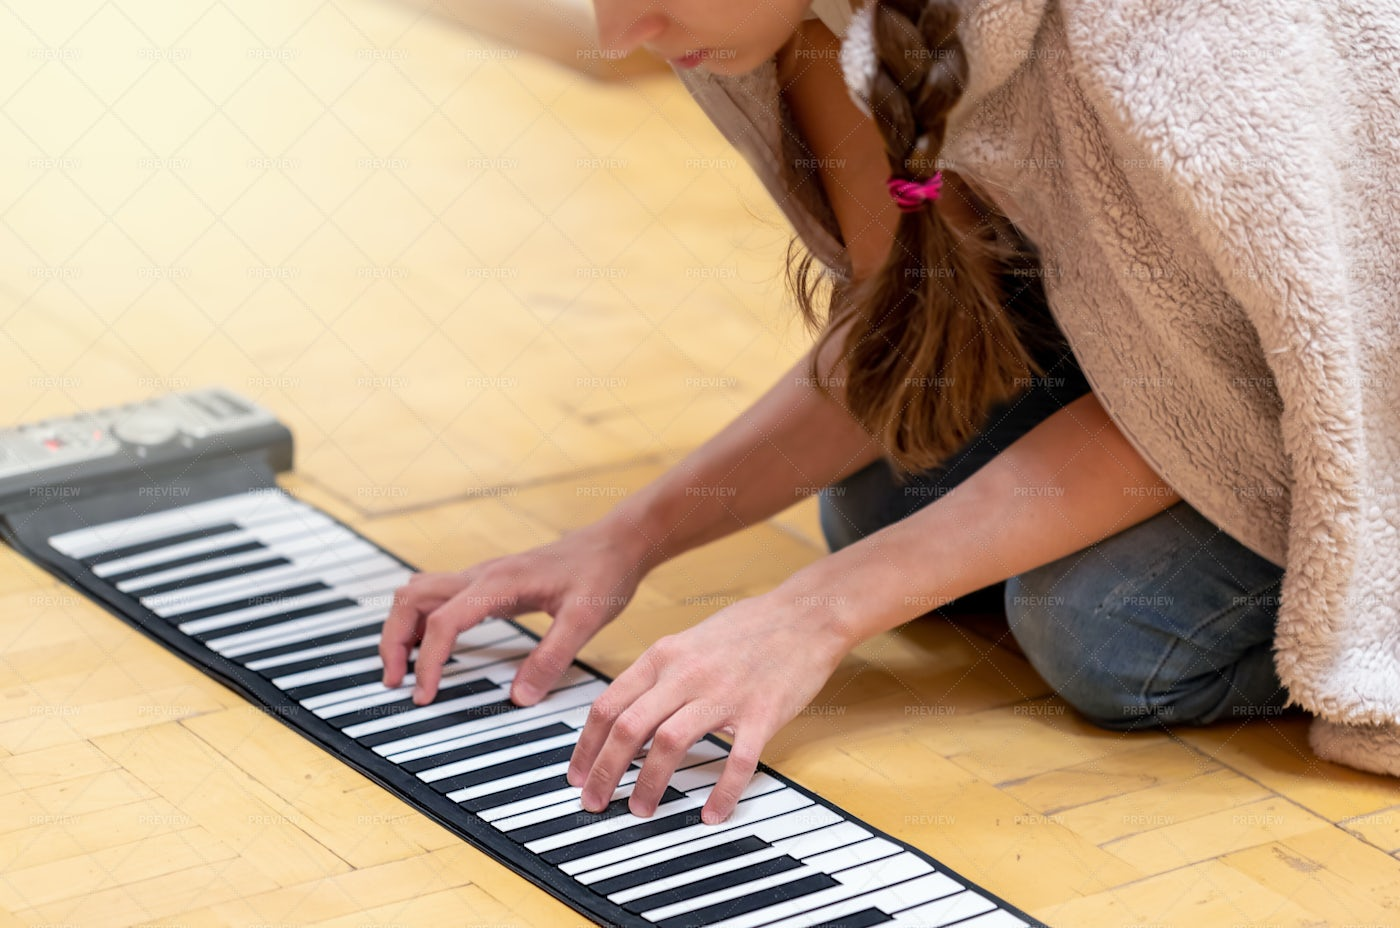 Hands And Piano Keyboard: Stock Photos